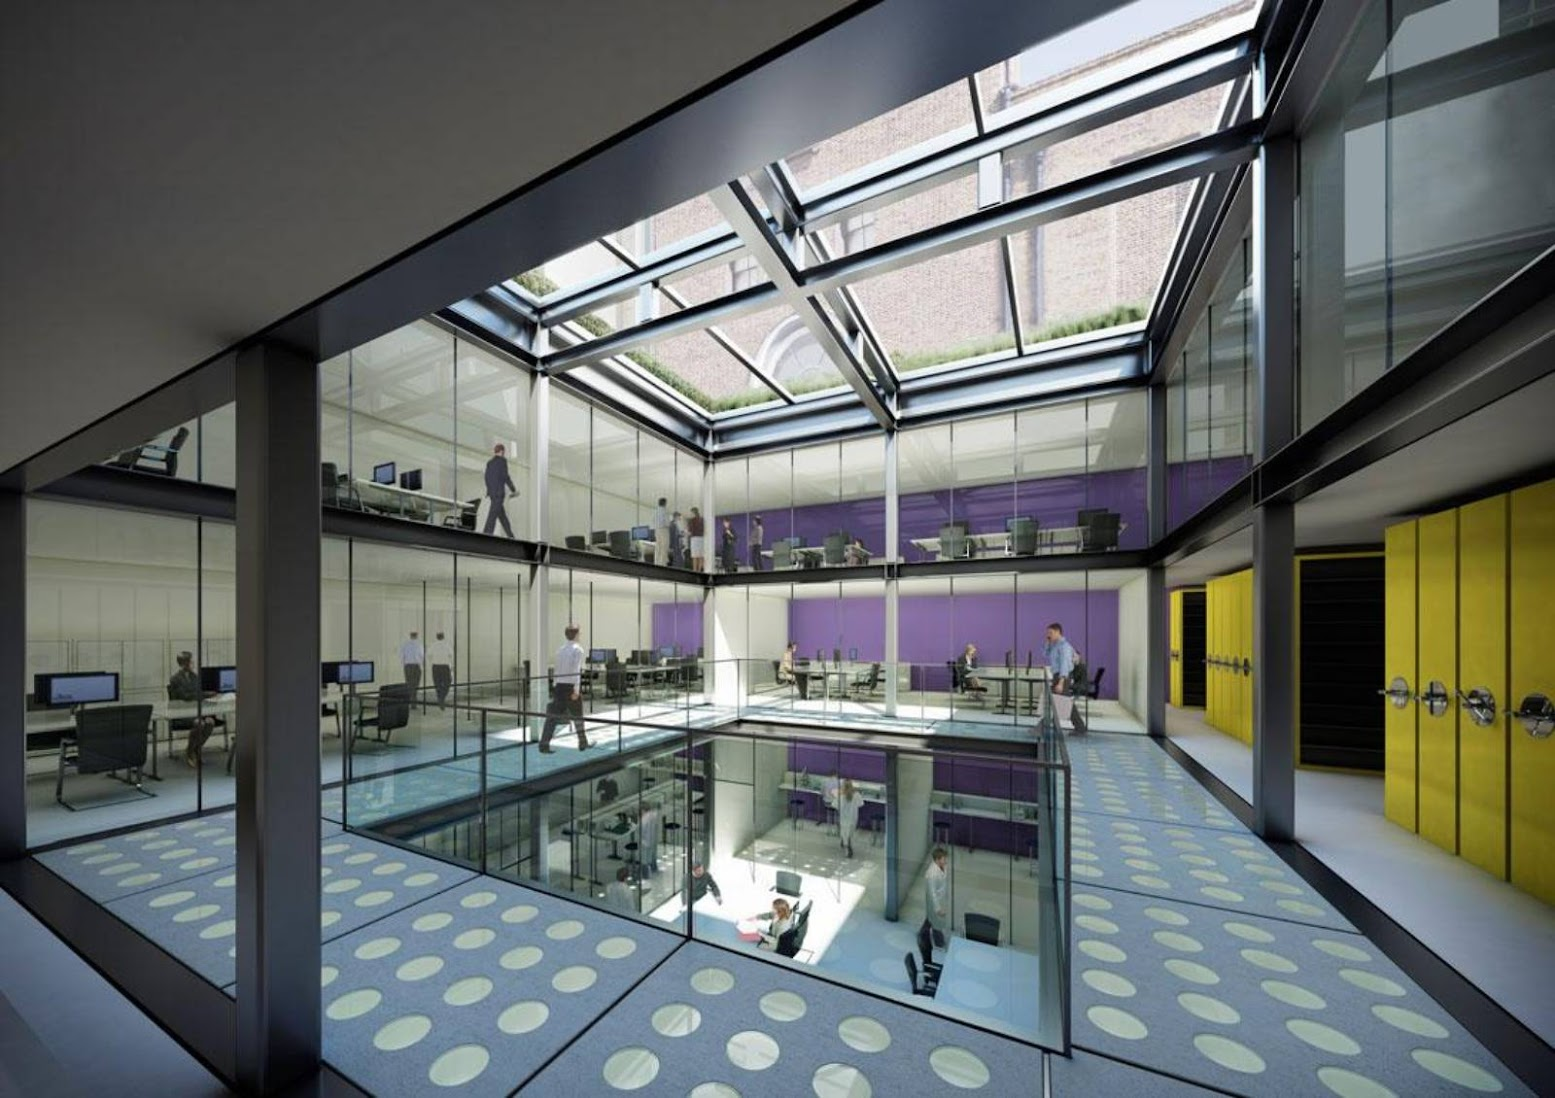 Rogers Stirk Harbour + Partners